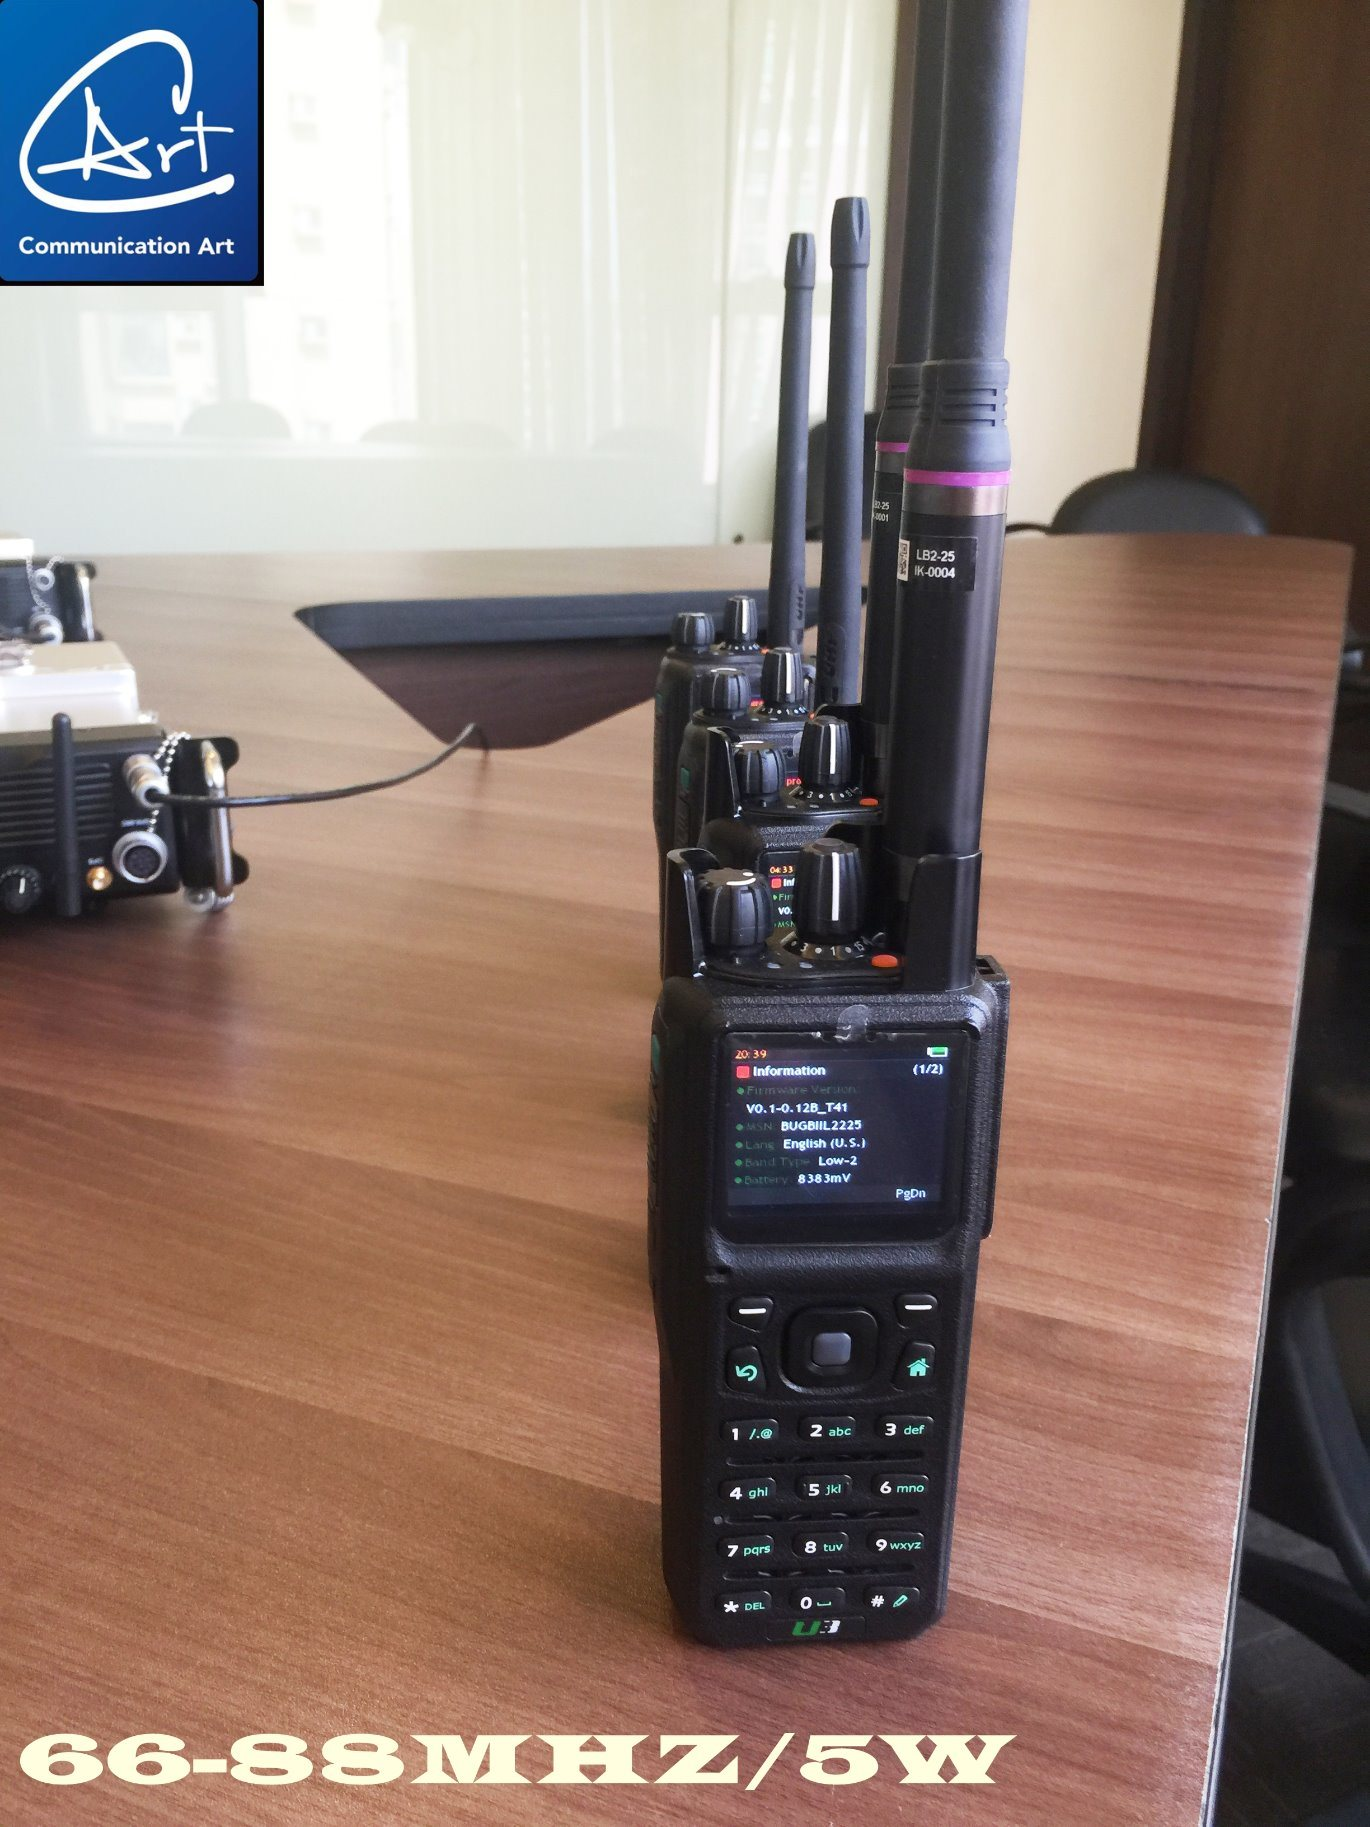 China Dmr 66-88MHz Dmr and Analog Two Way Radio for Dmr